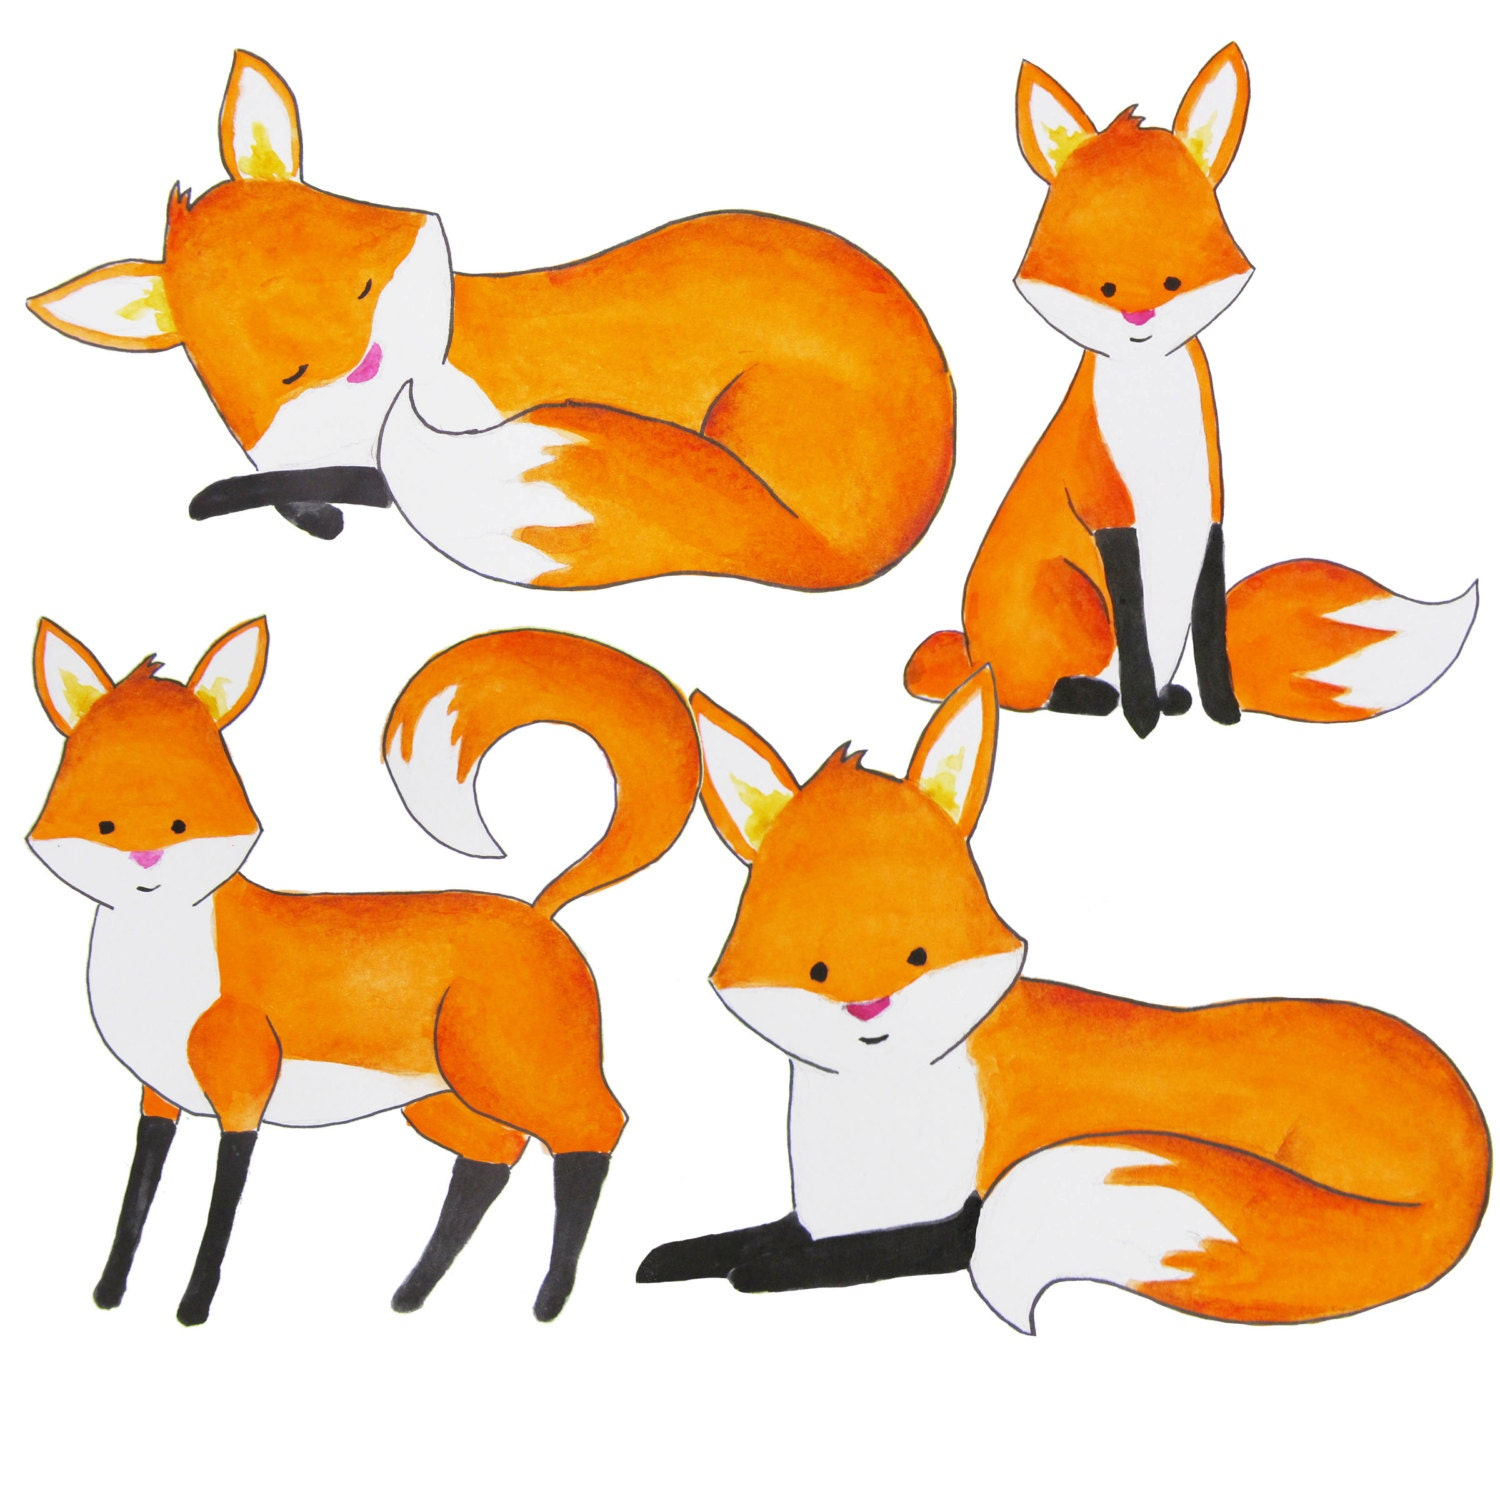 watercolor fox clipart foxes clipart red fox clip art forest rh etsystudio com woodland forest animals clipart cute forest animal clipart